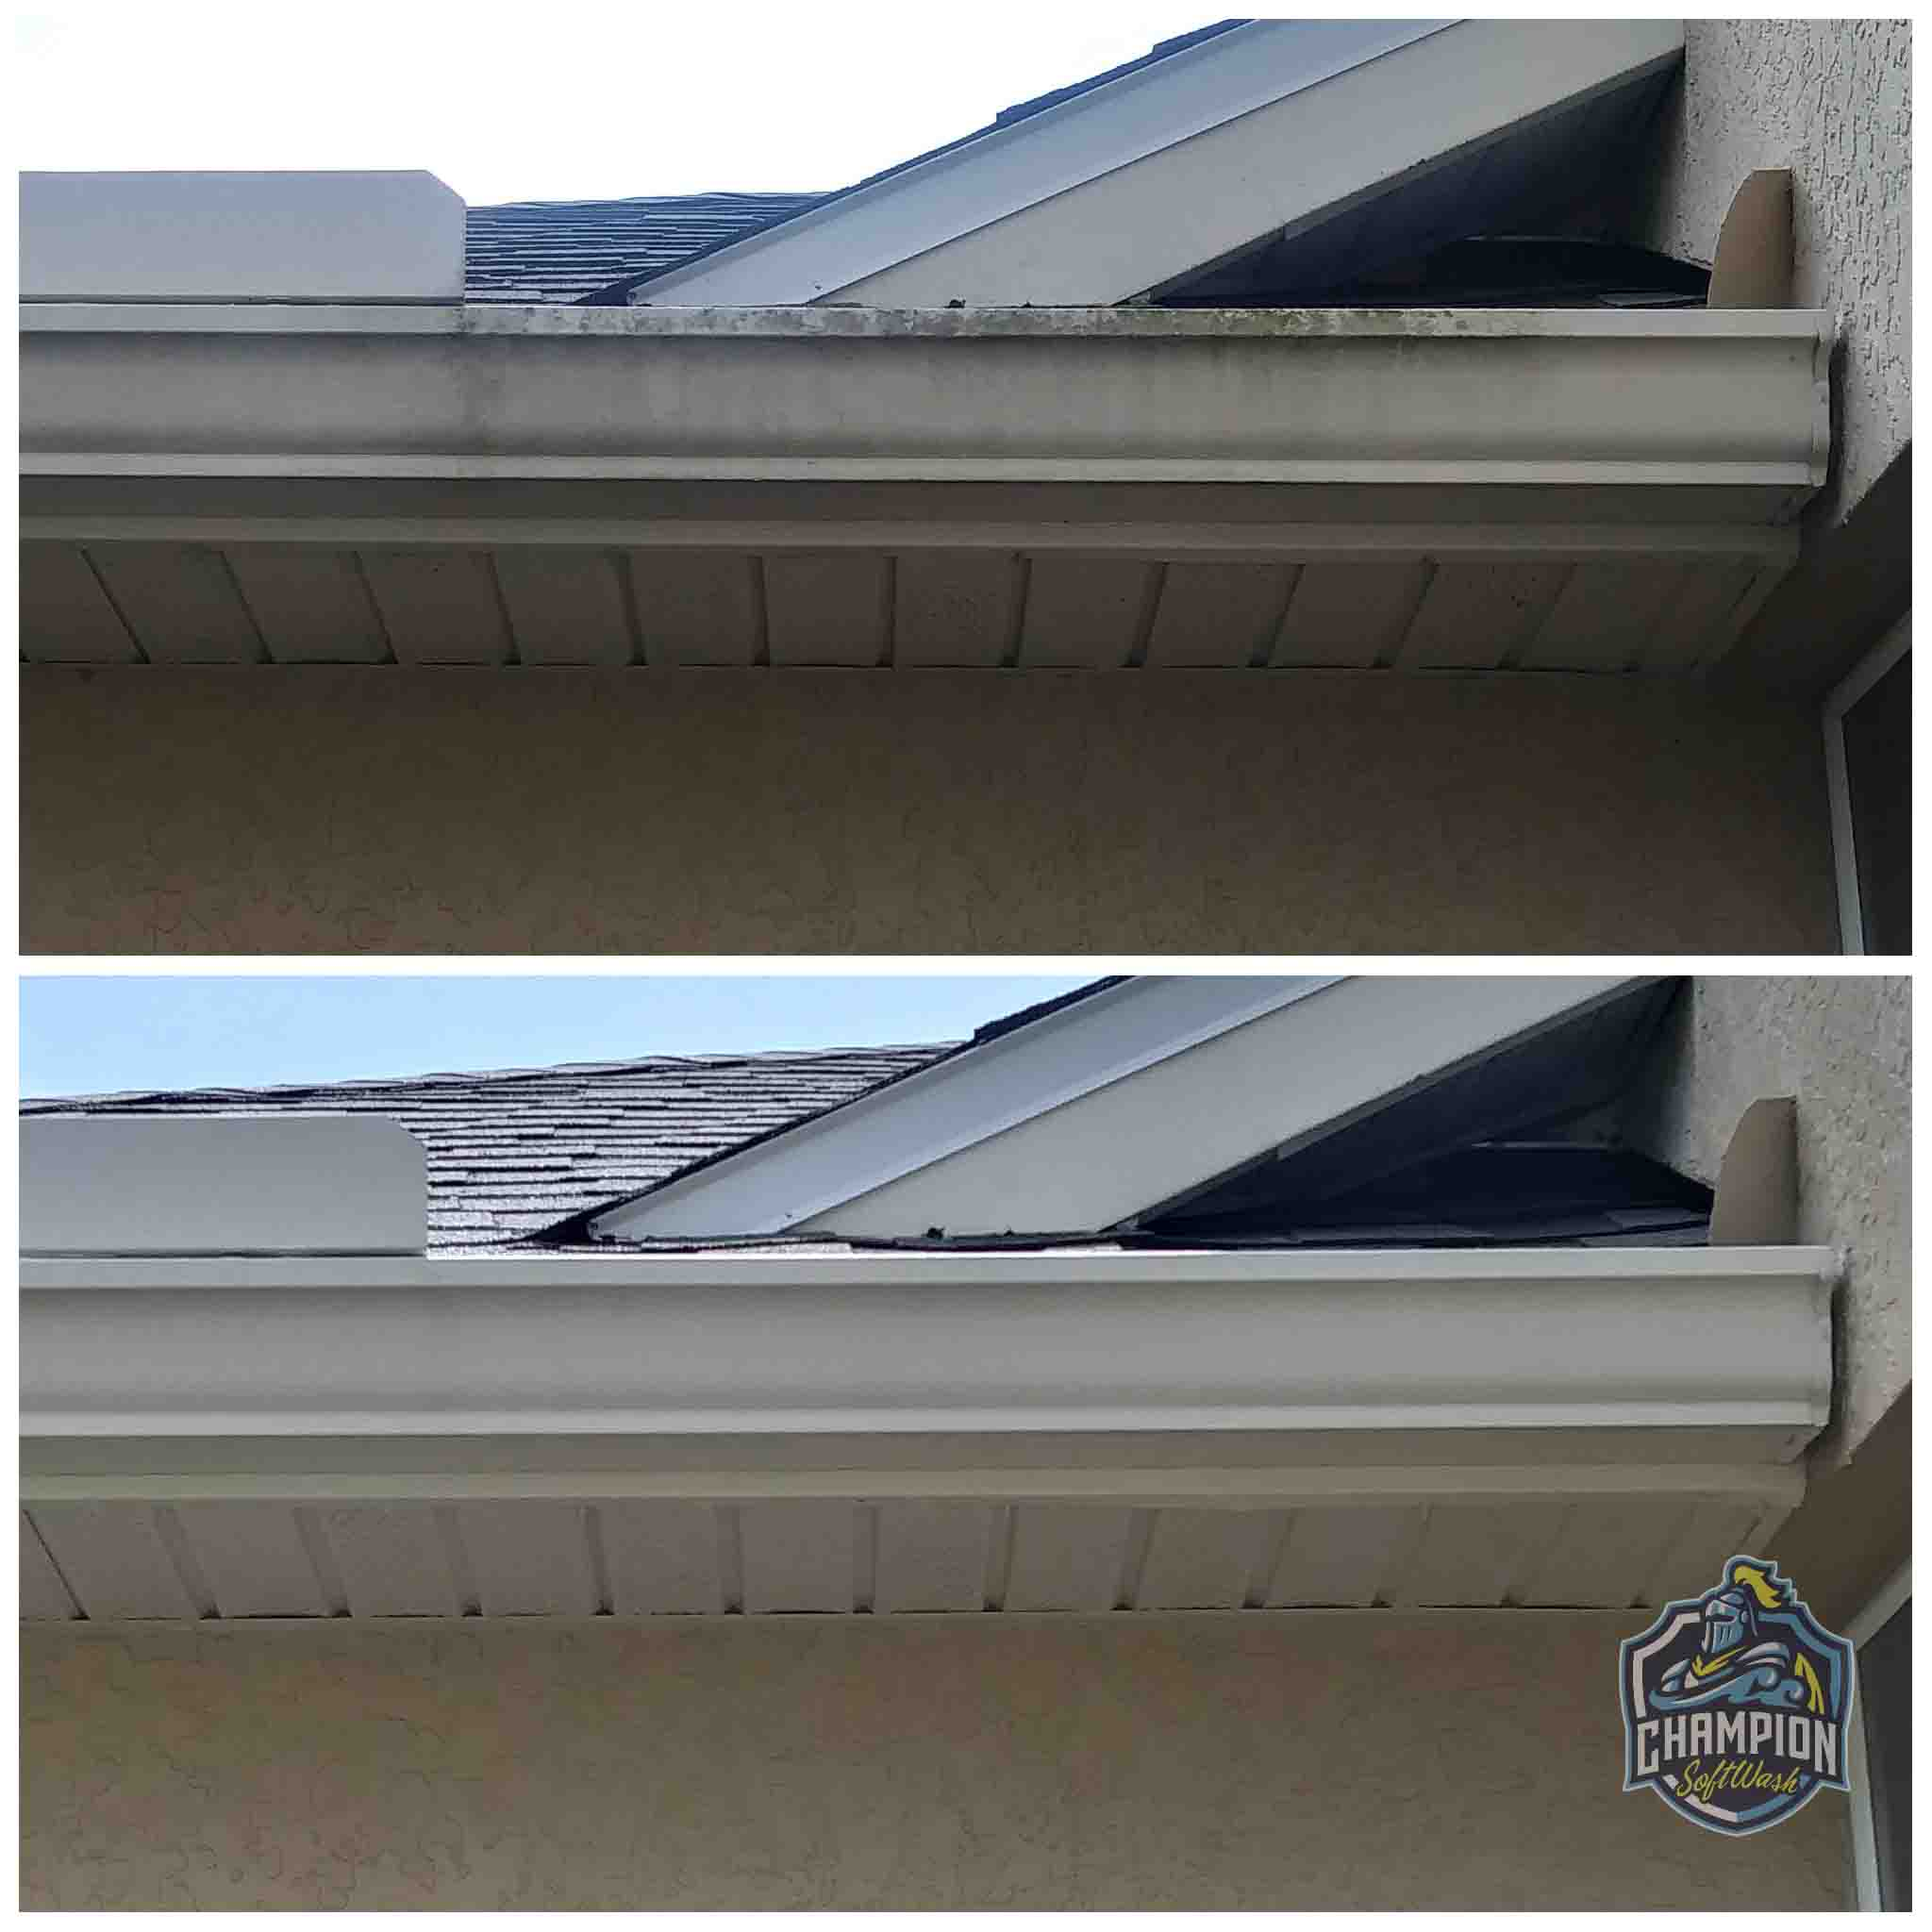 Gutter cleaning and brightening before and after, soffit cleaning, house wash